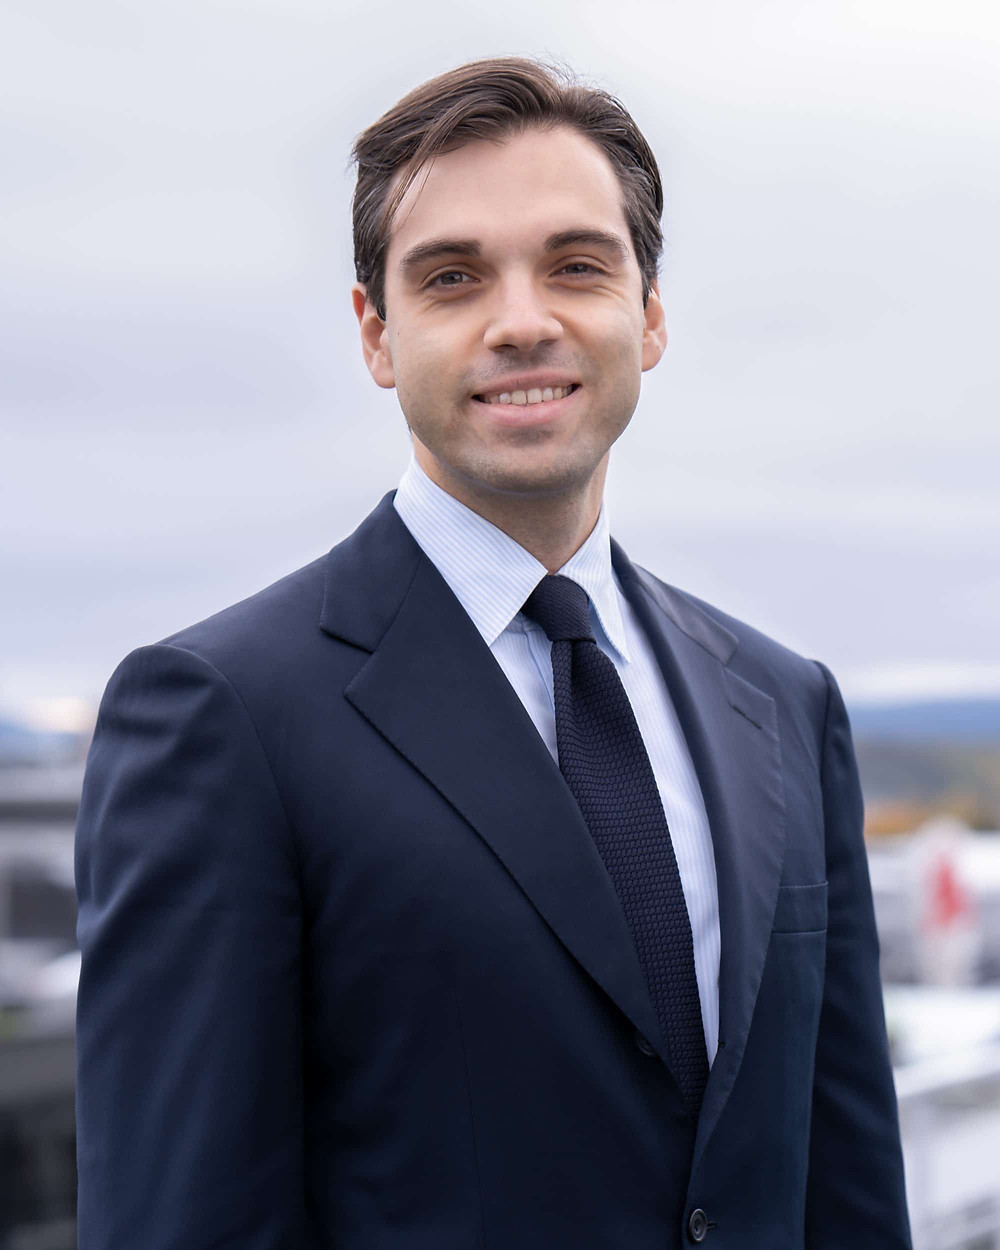 headshot of a man in a suit